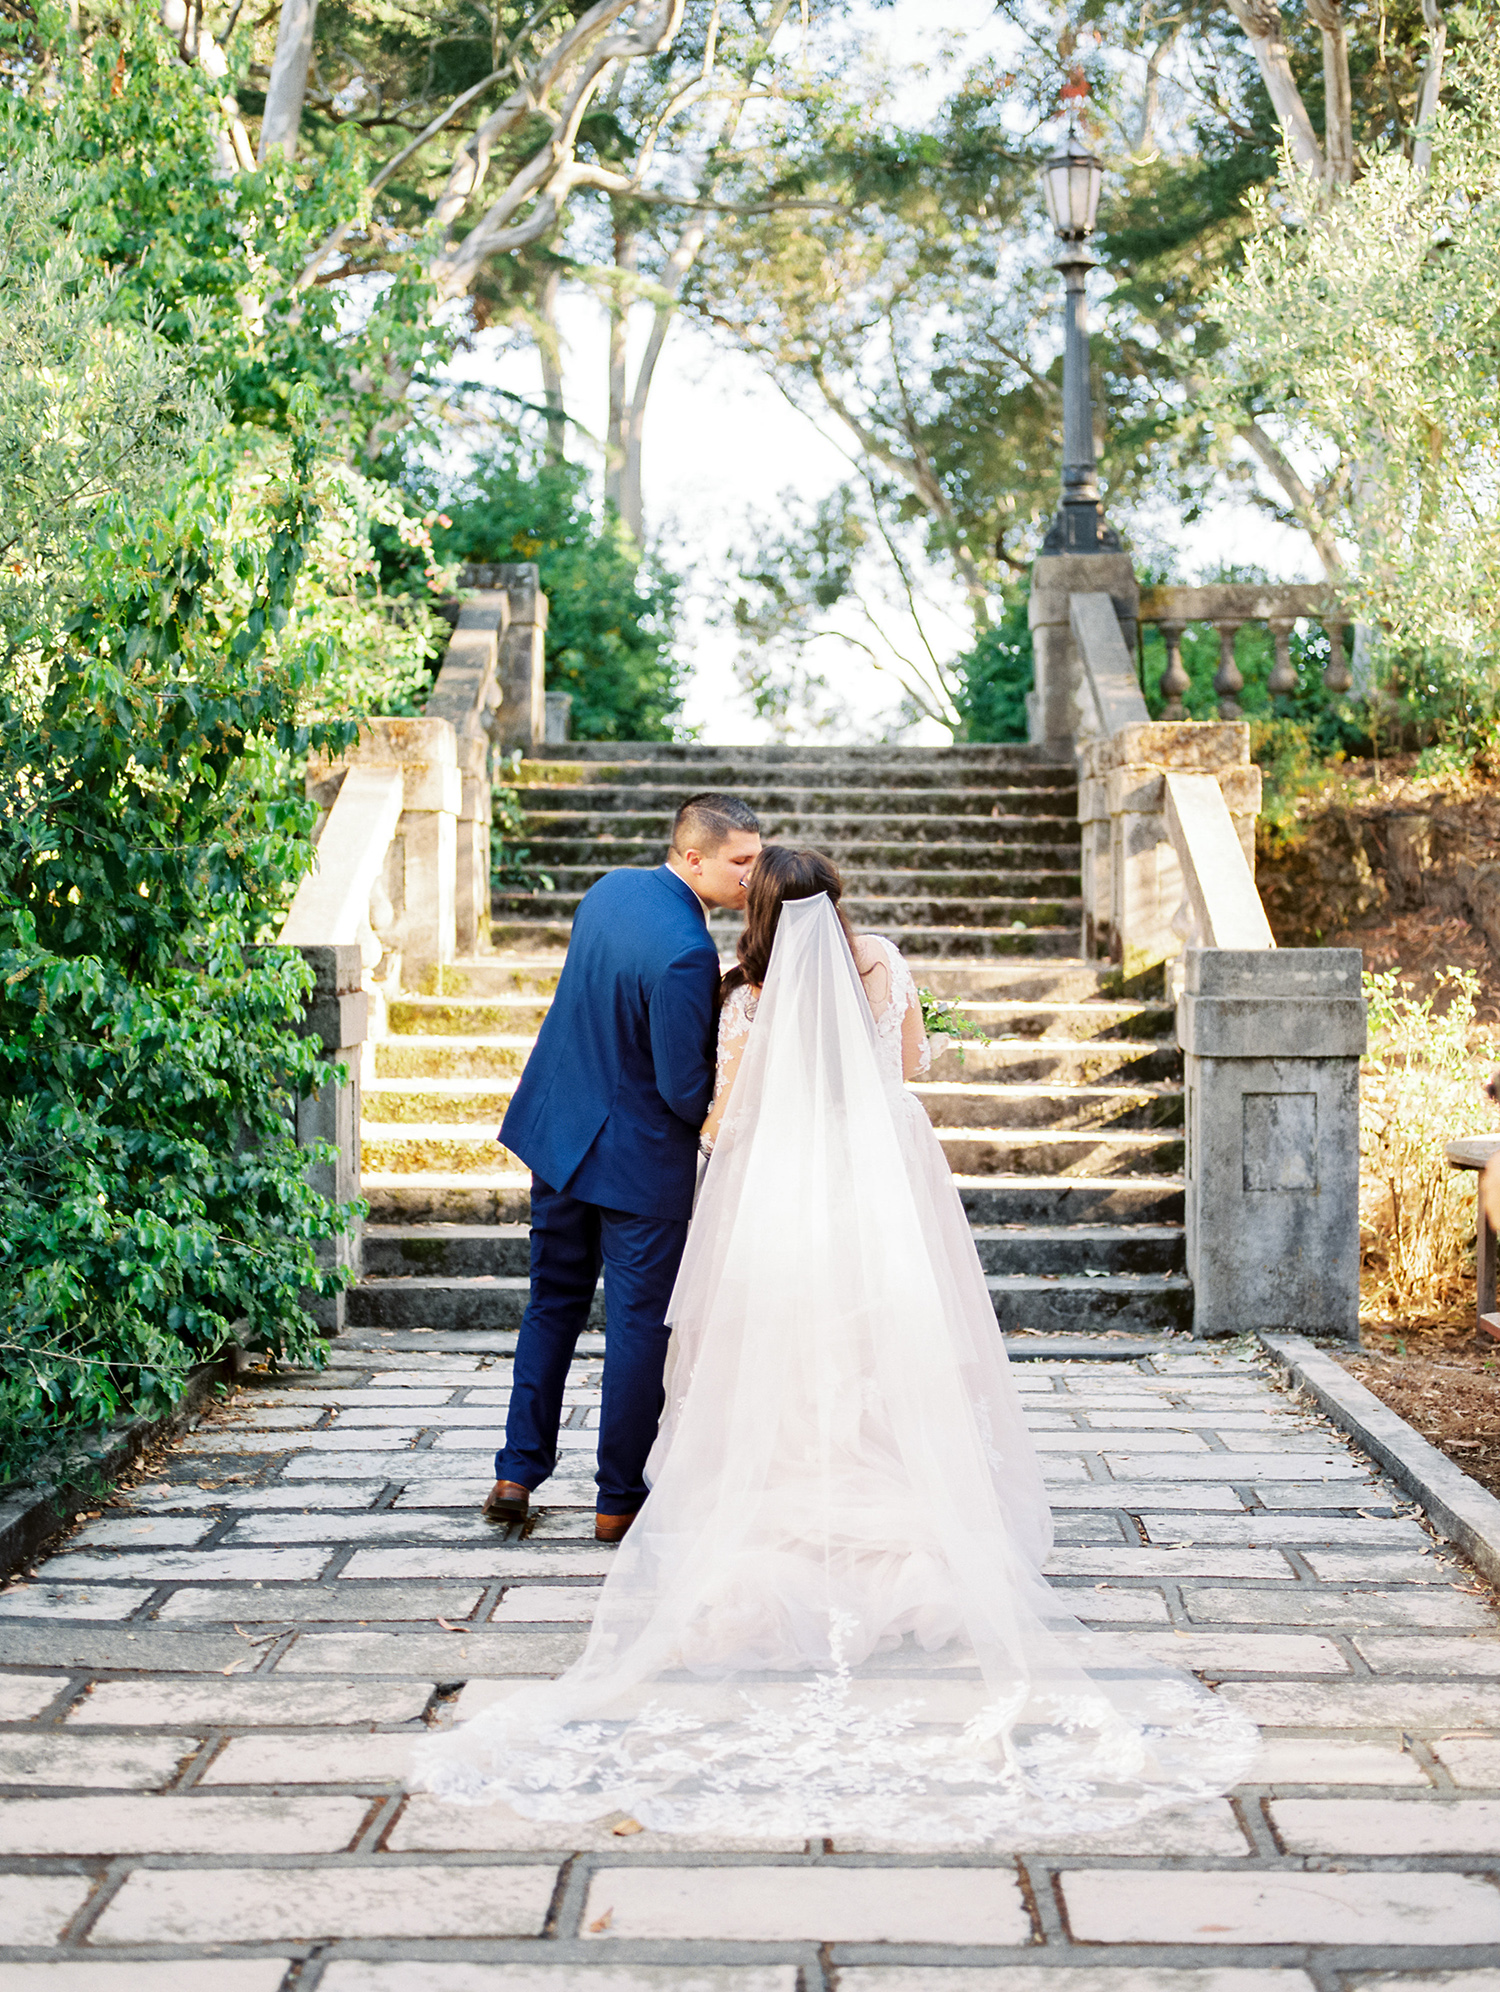 erika evan wedding couple in front of steps